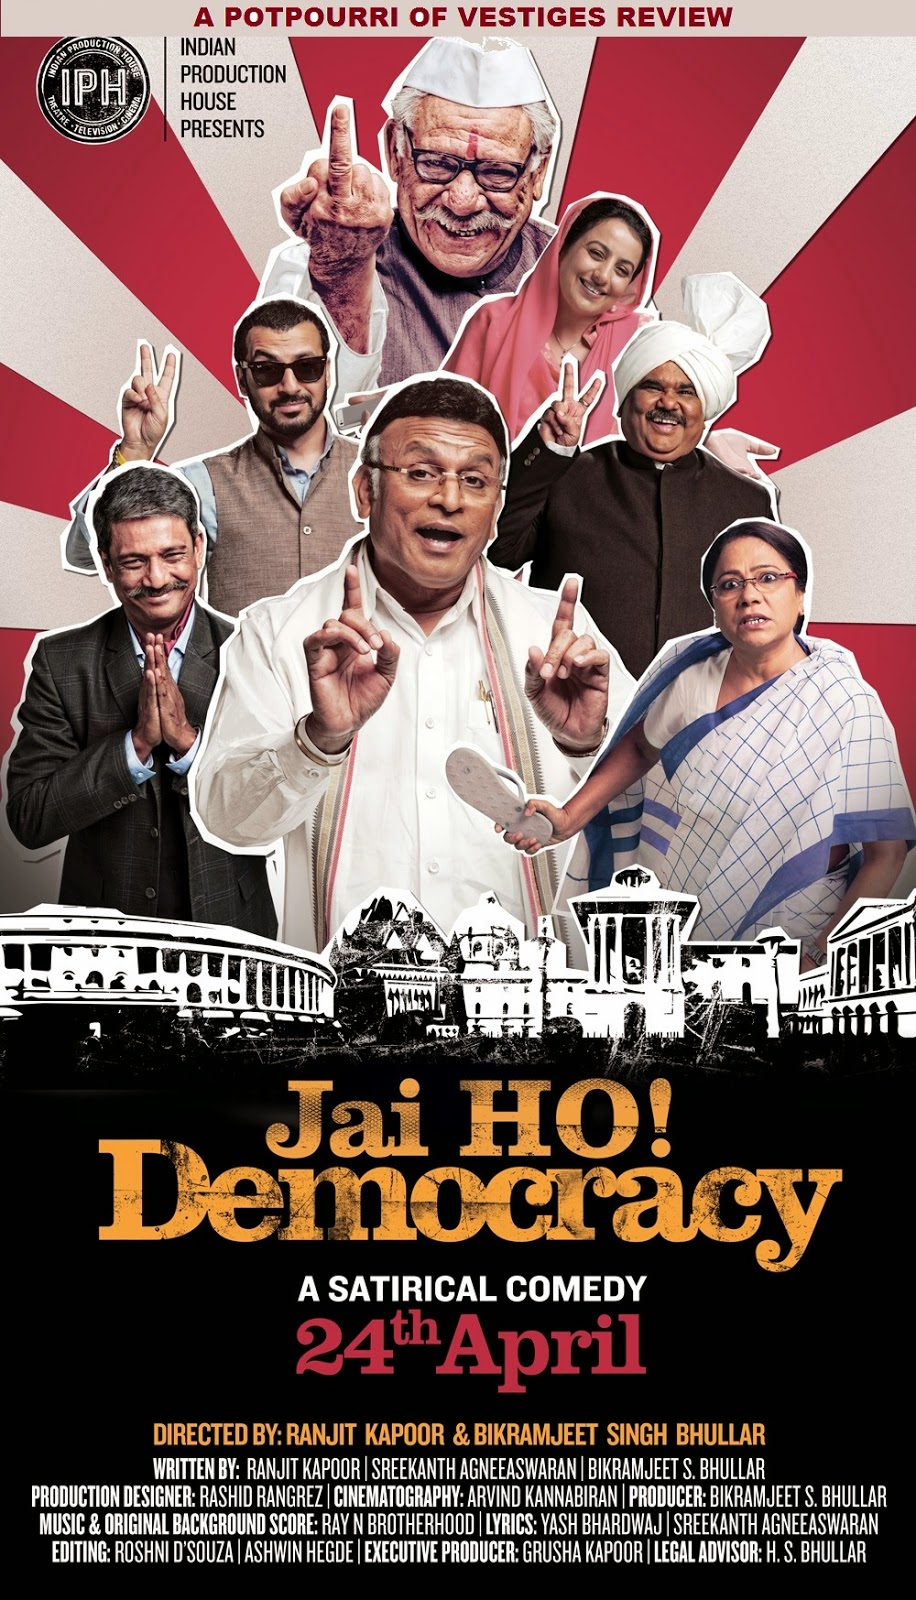 Jai Ho! Democracy, Directed by Ranjit Kapoor, starring Om Puri, Annu Kapoor, Seema Biswas, Adil Hussain and Satish Kaushik